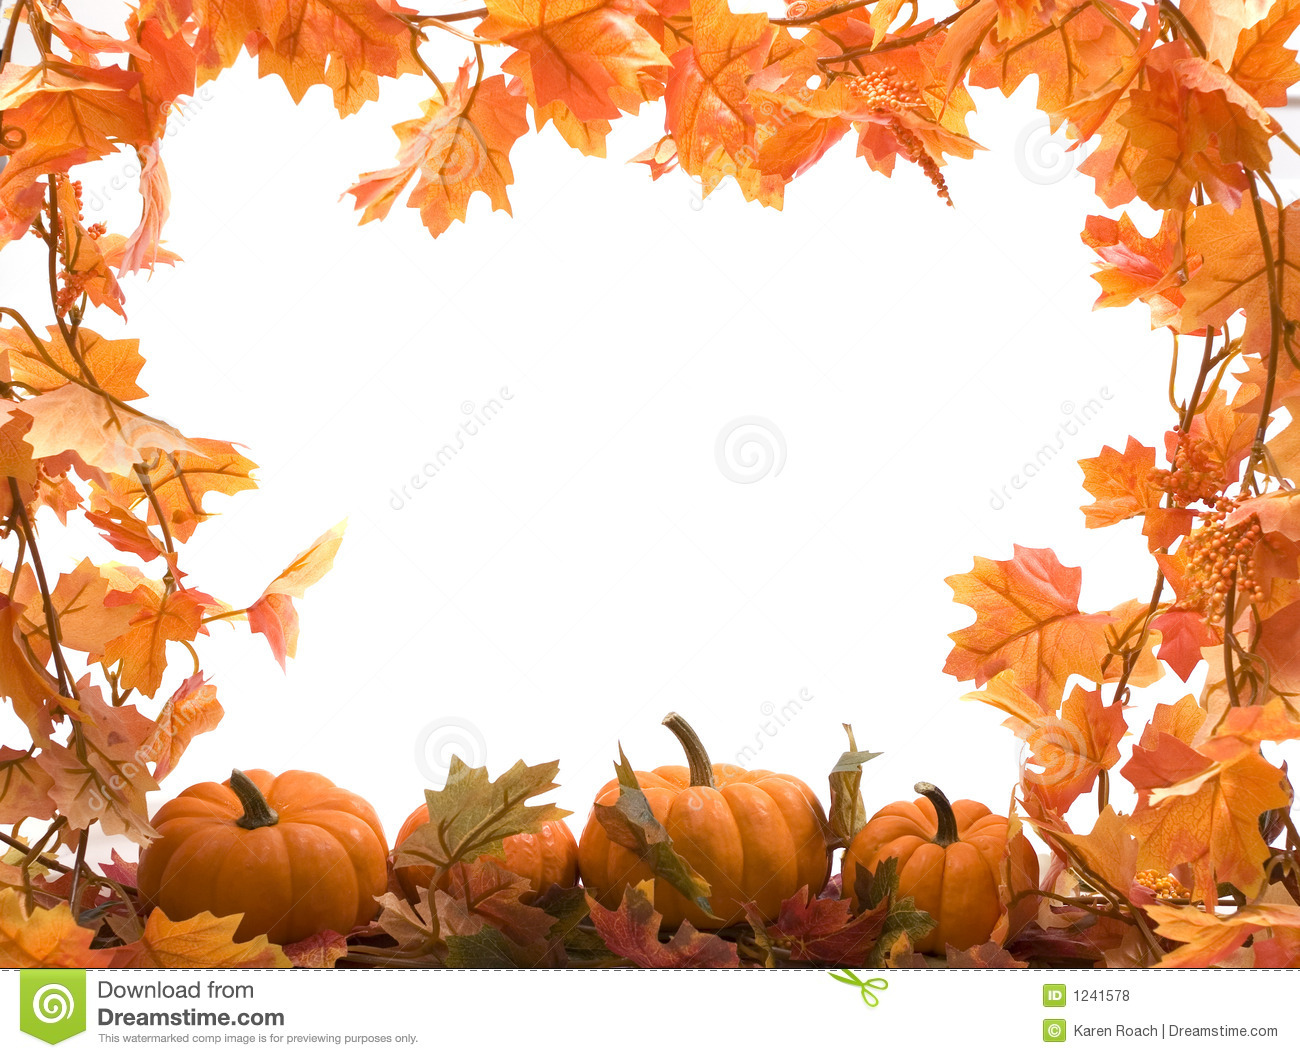 Free Clipart Fall Leaves Pumpkins.